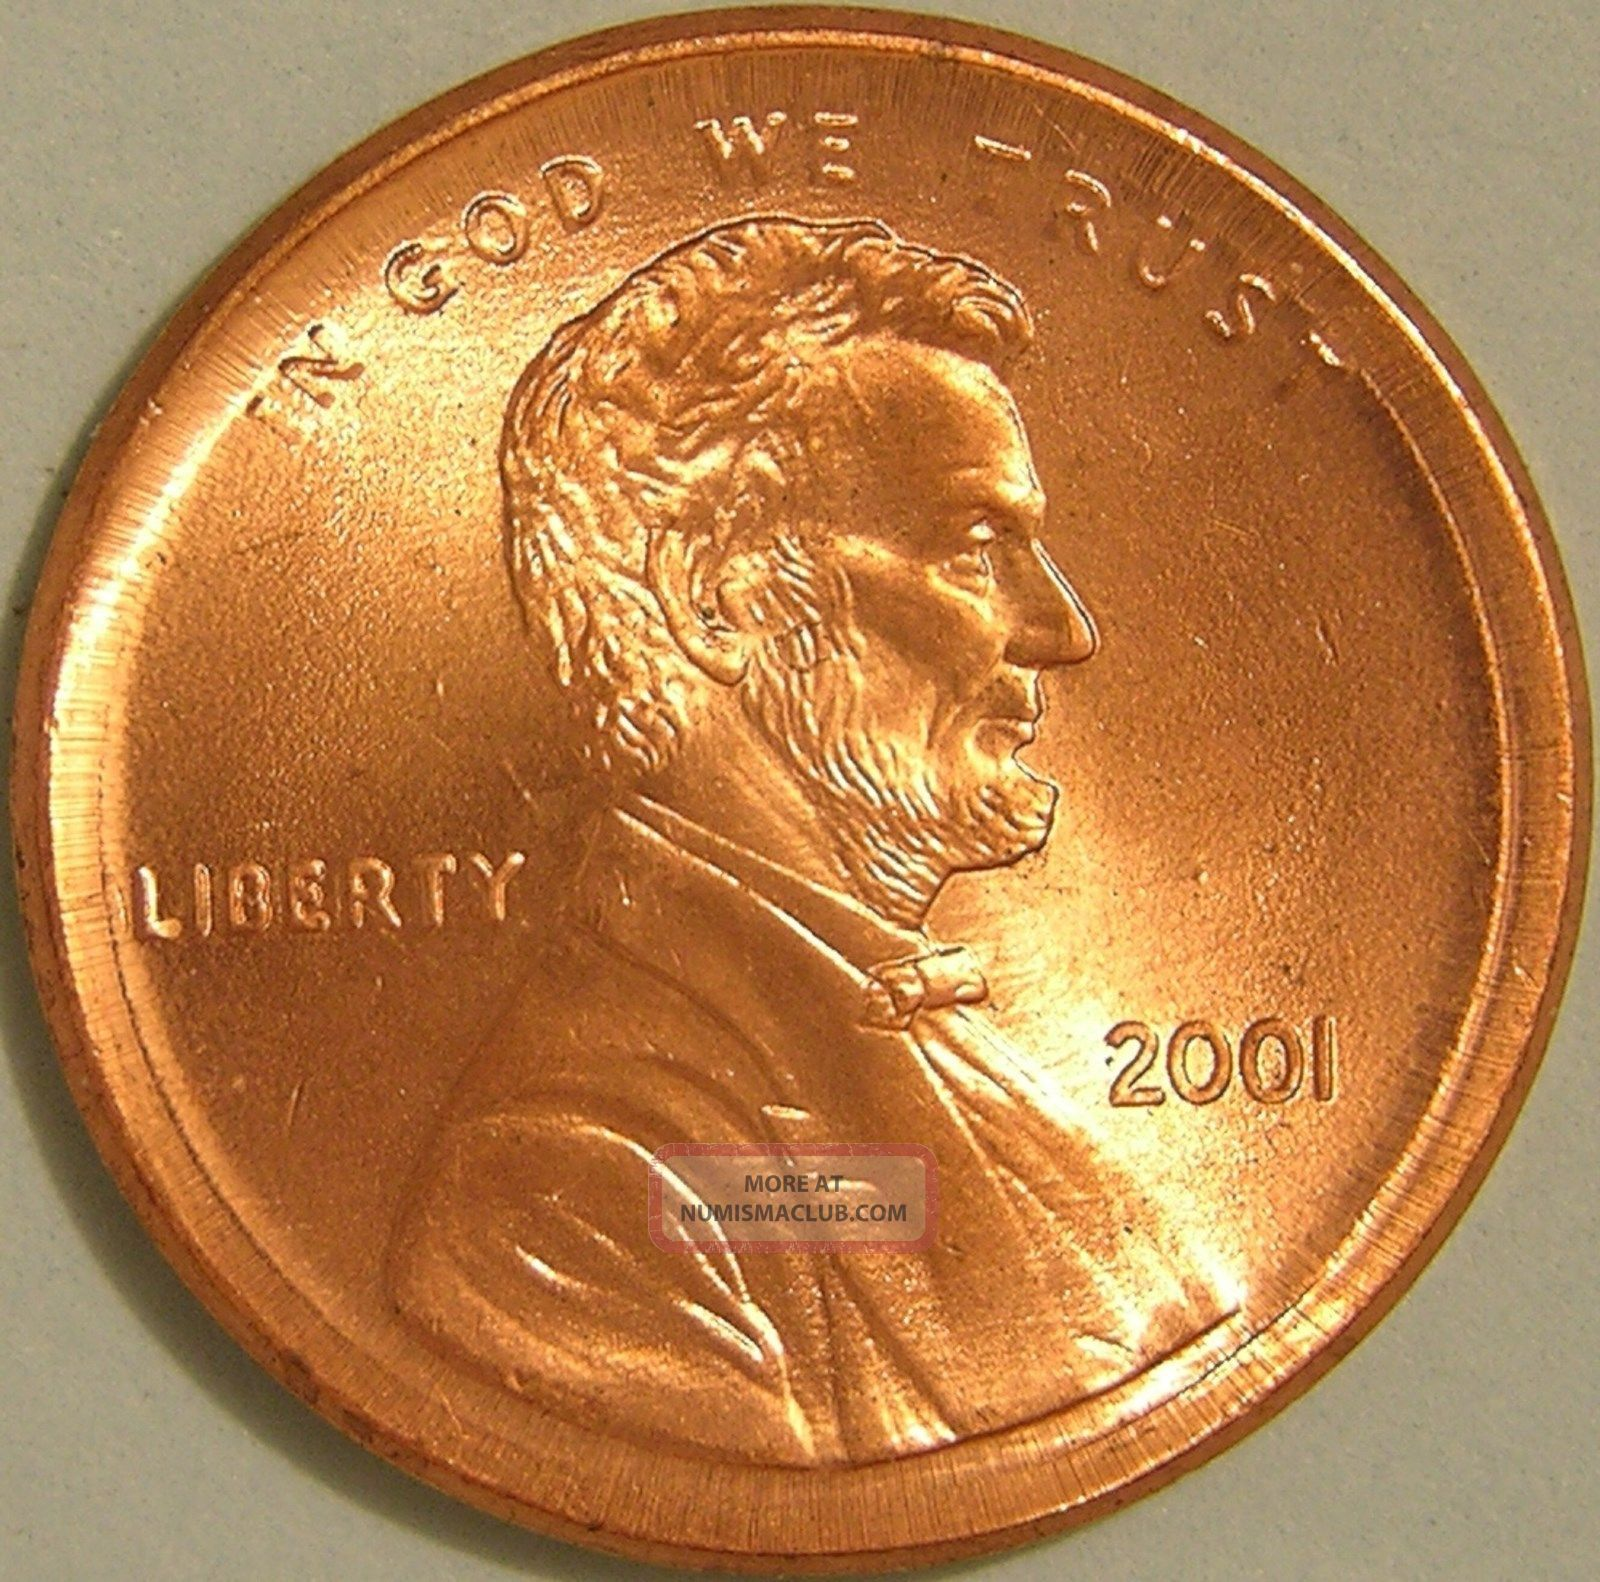 2001 P Lincoln Memorial Penny Broadstruck Error Coin